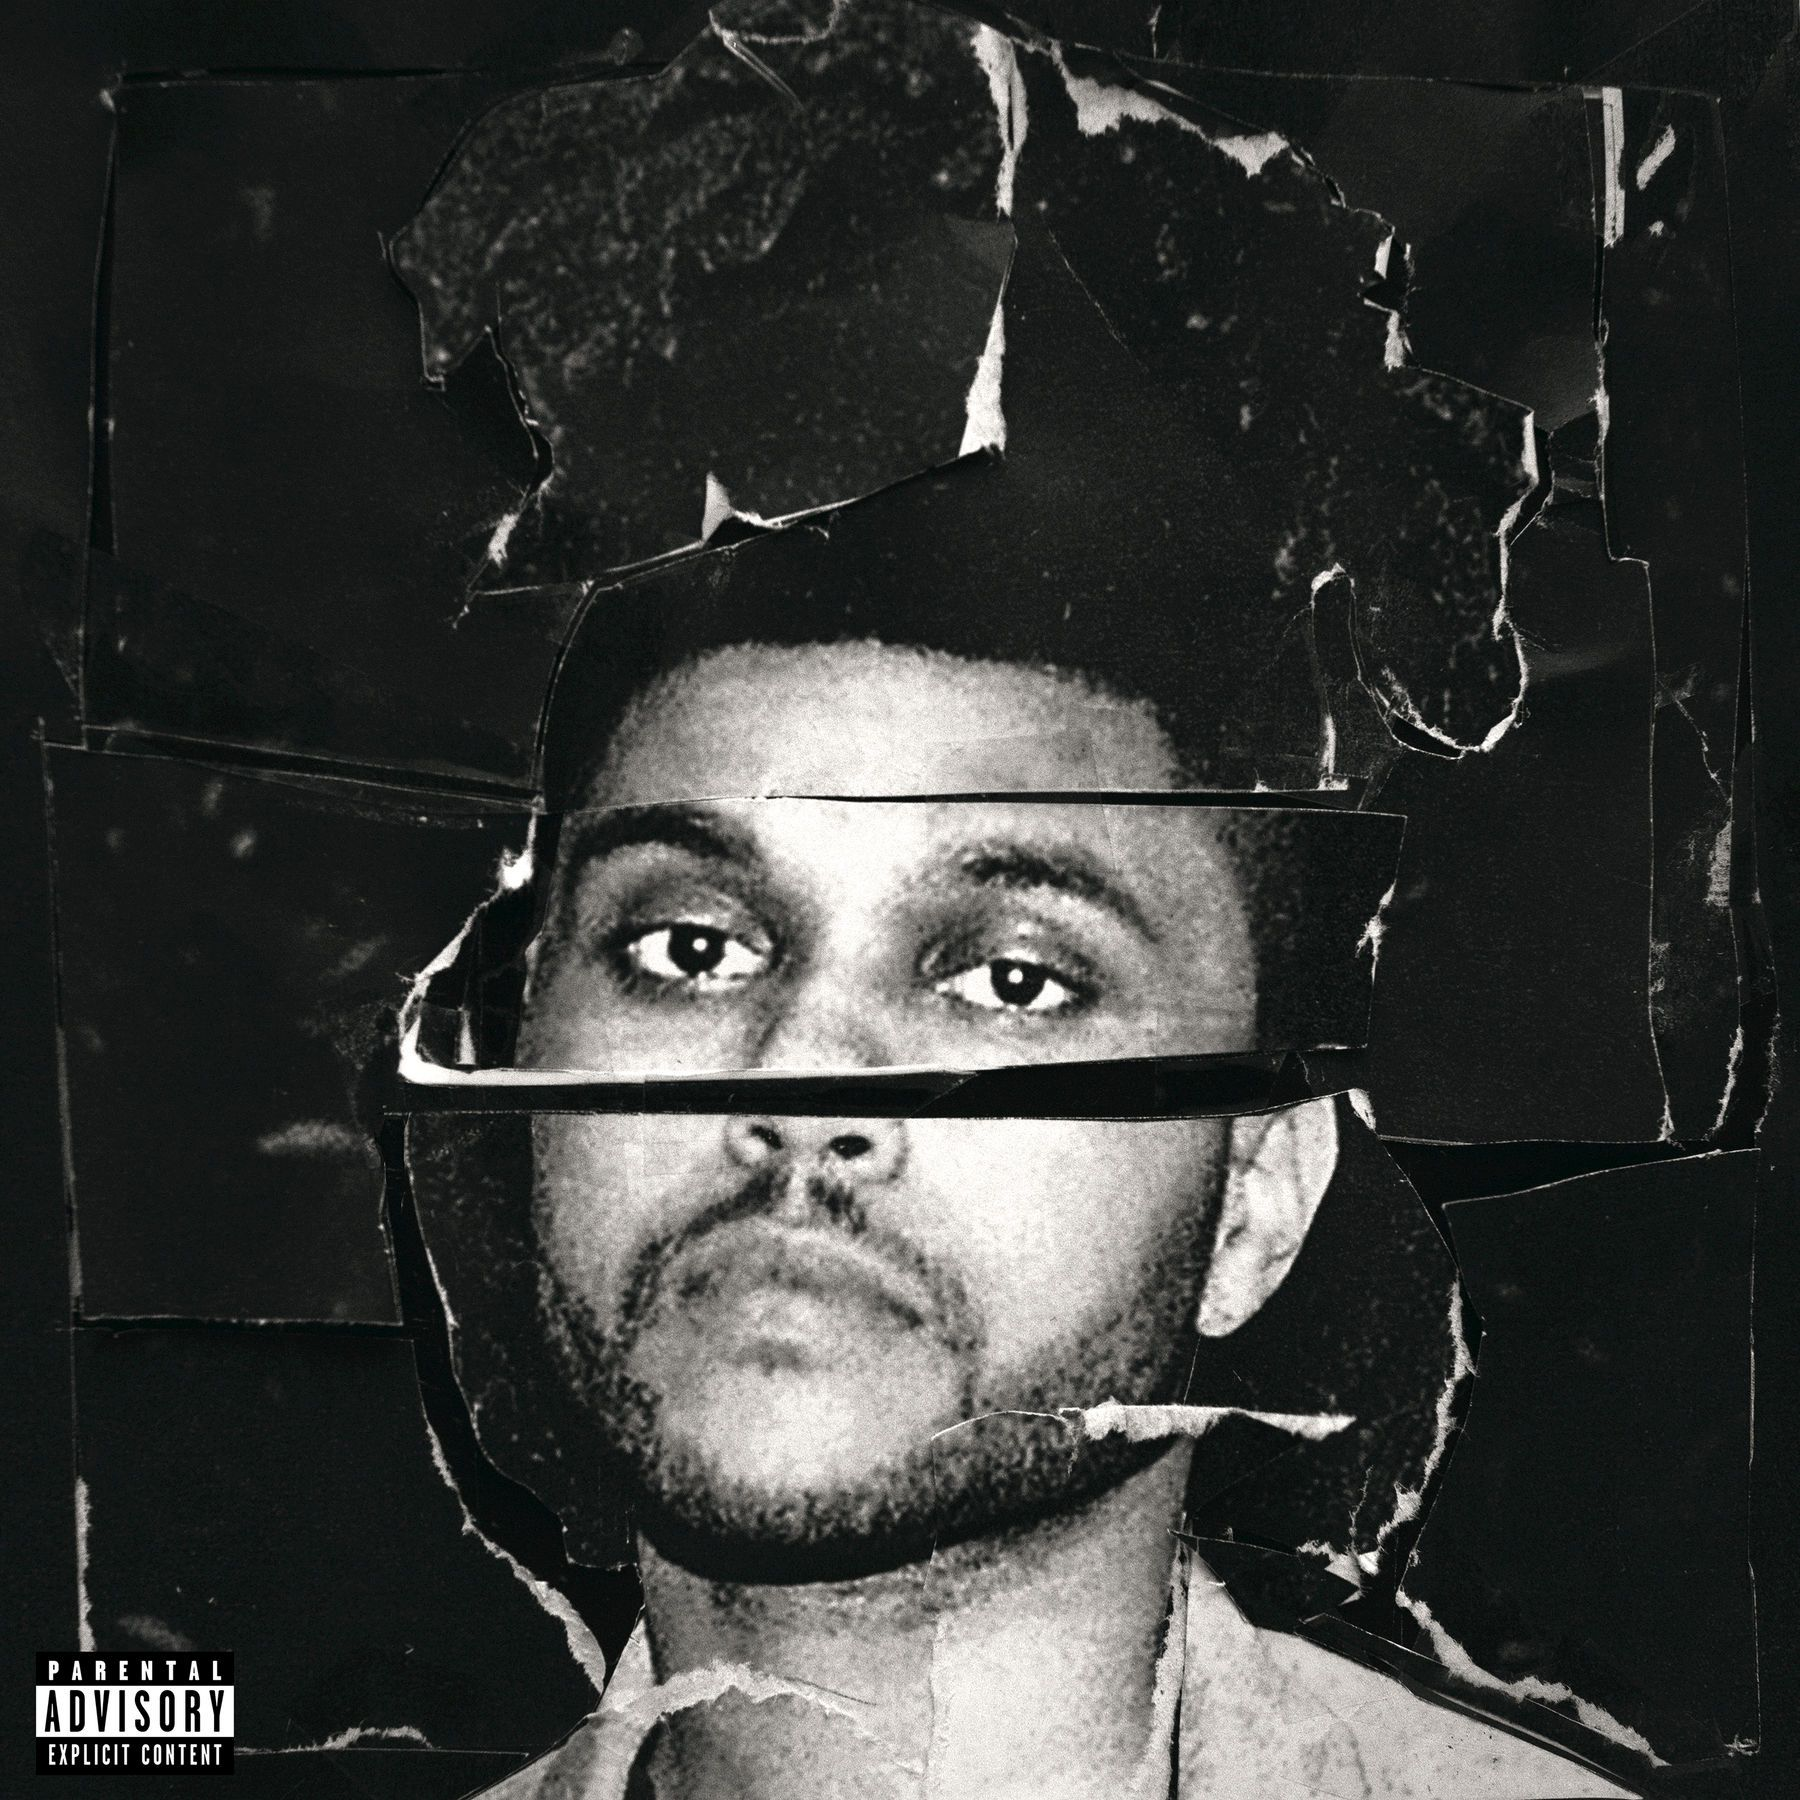 The Weeknd - Beauty Behind The Madness album cover